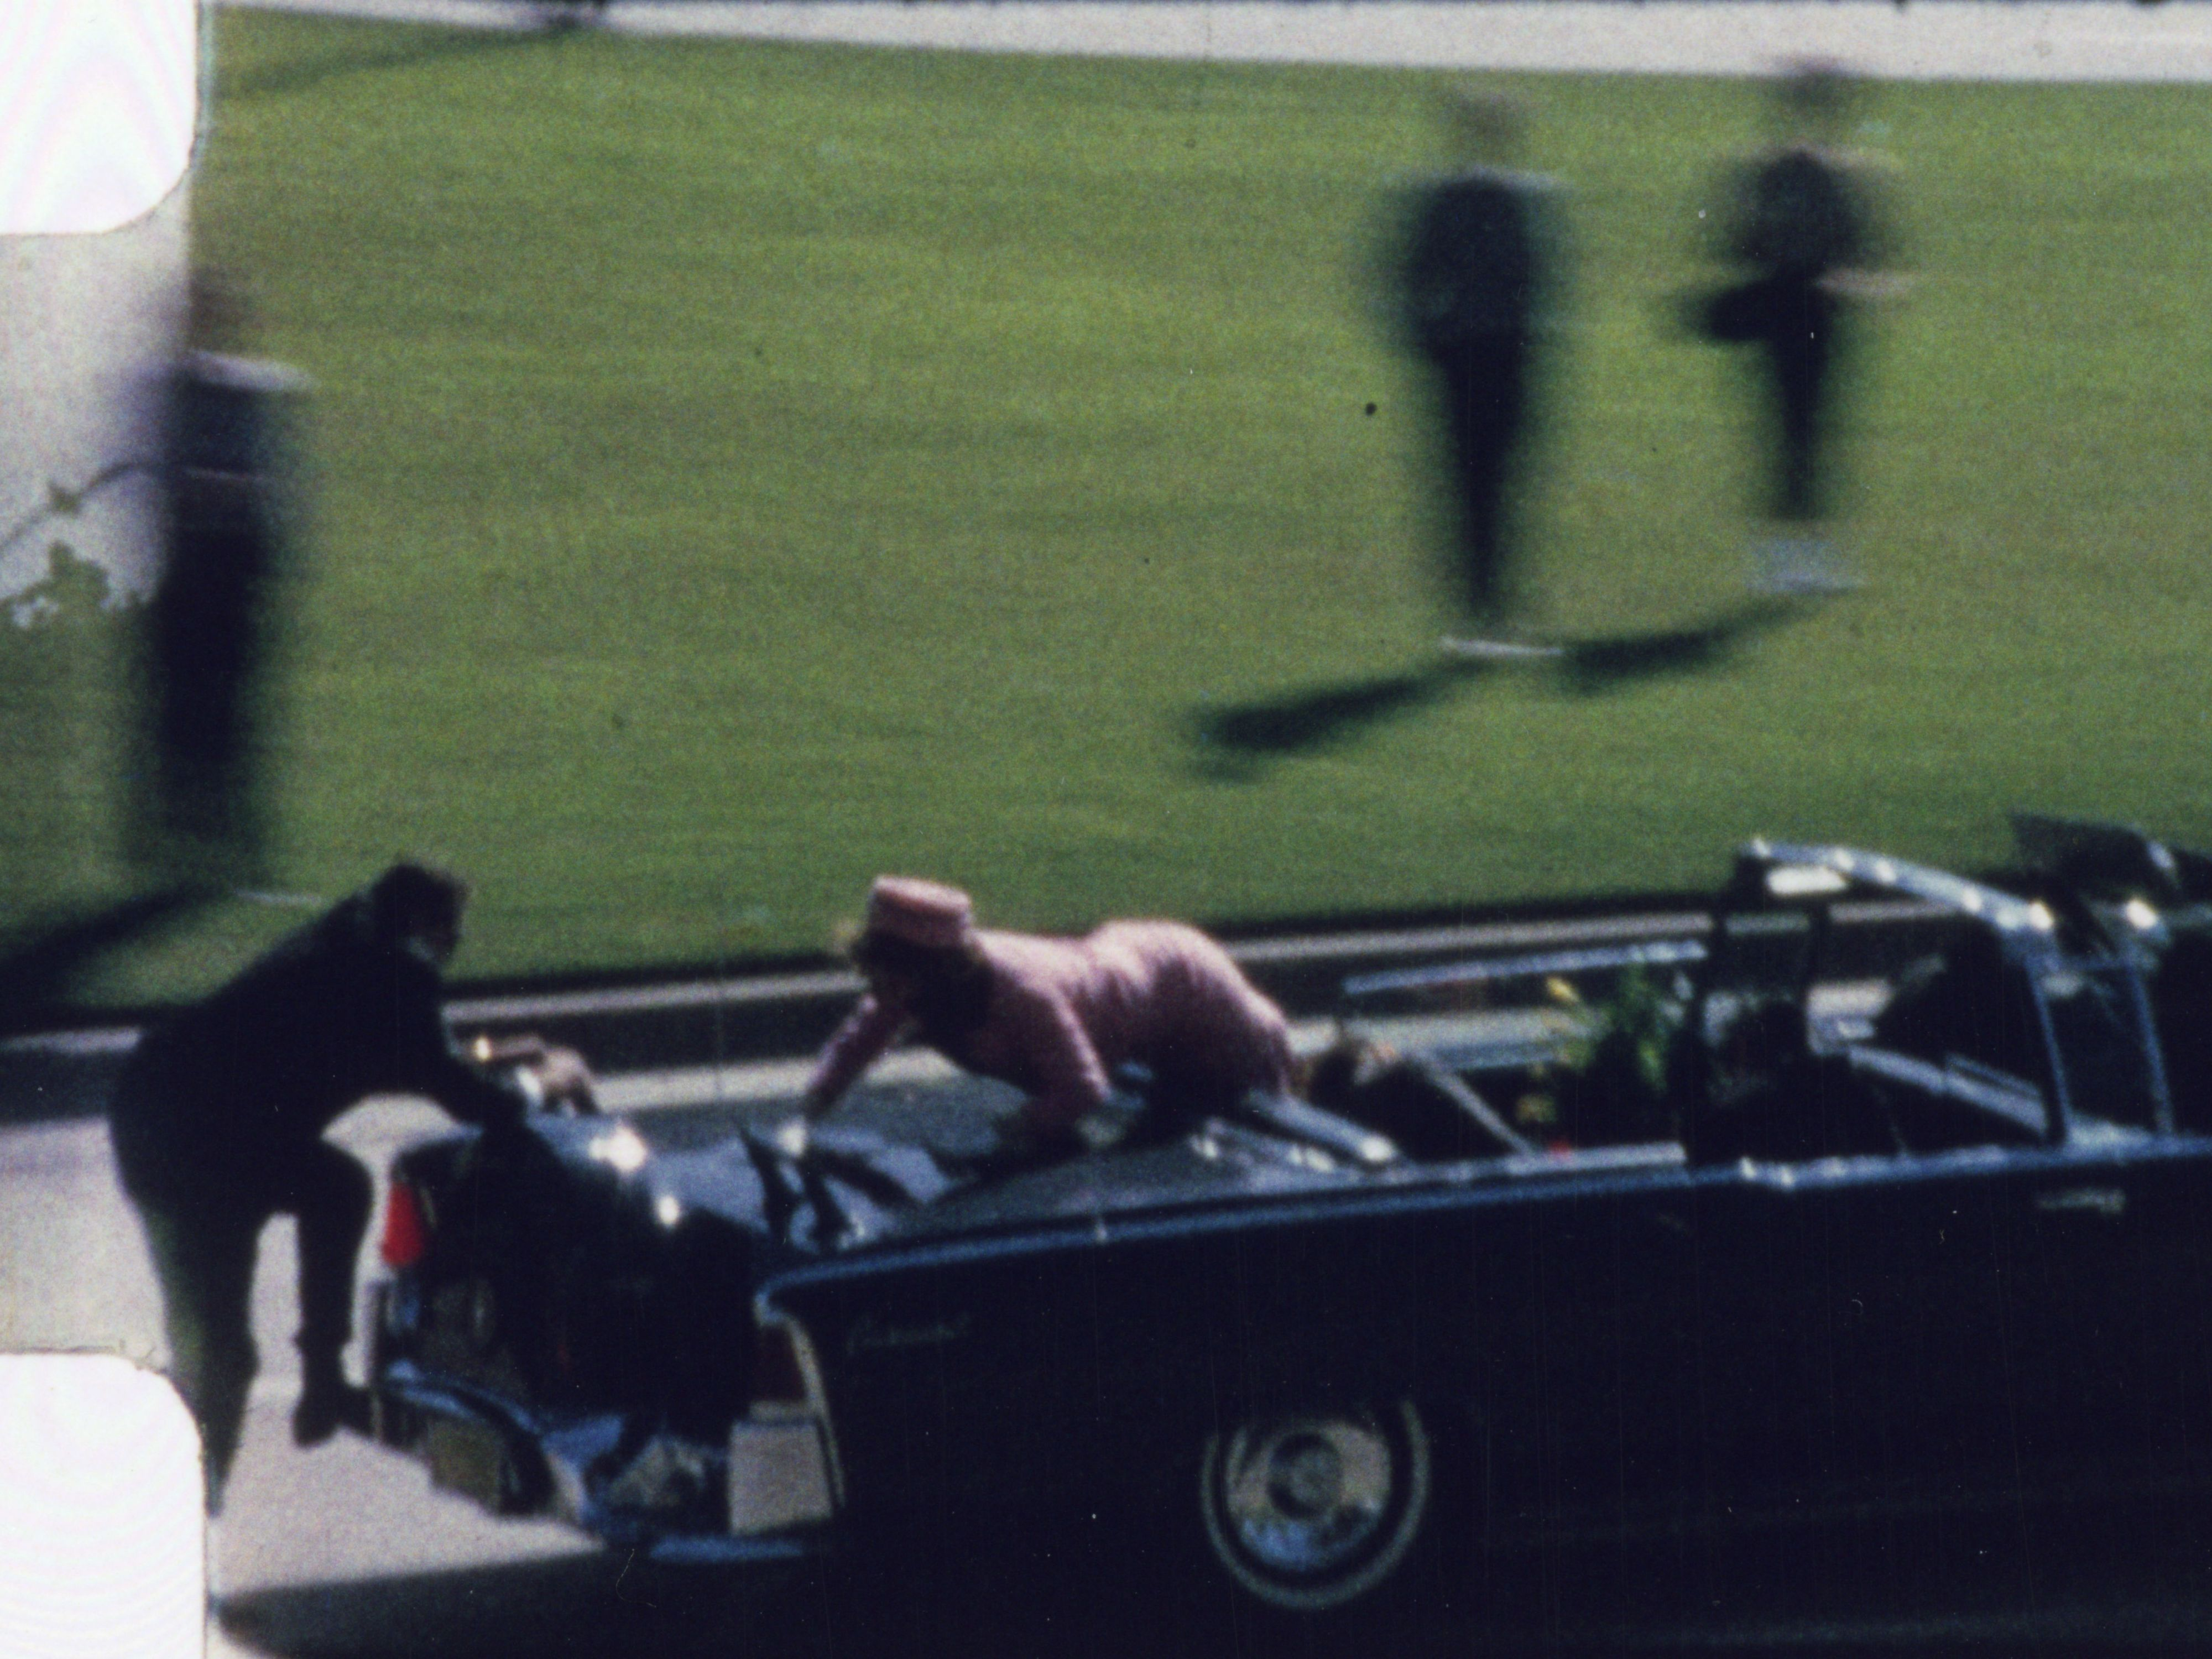 KENNEDY ZAPRUDER WINDOWS VISTA DRIVER DOWNLOAD